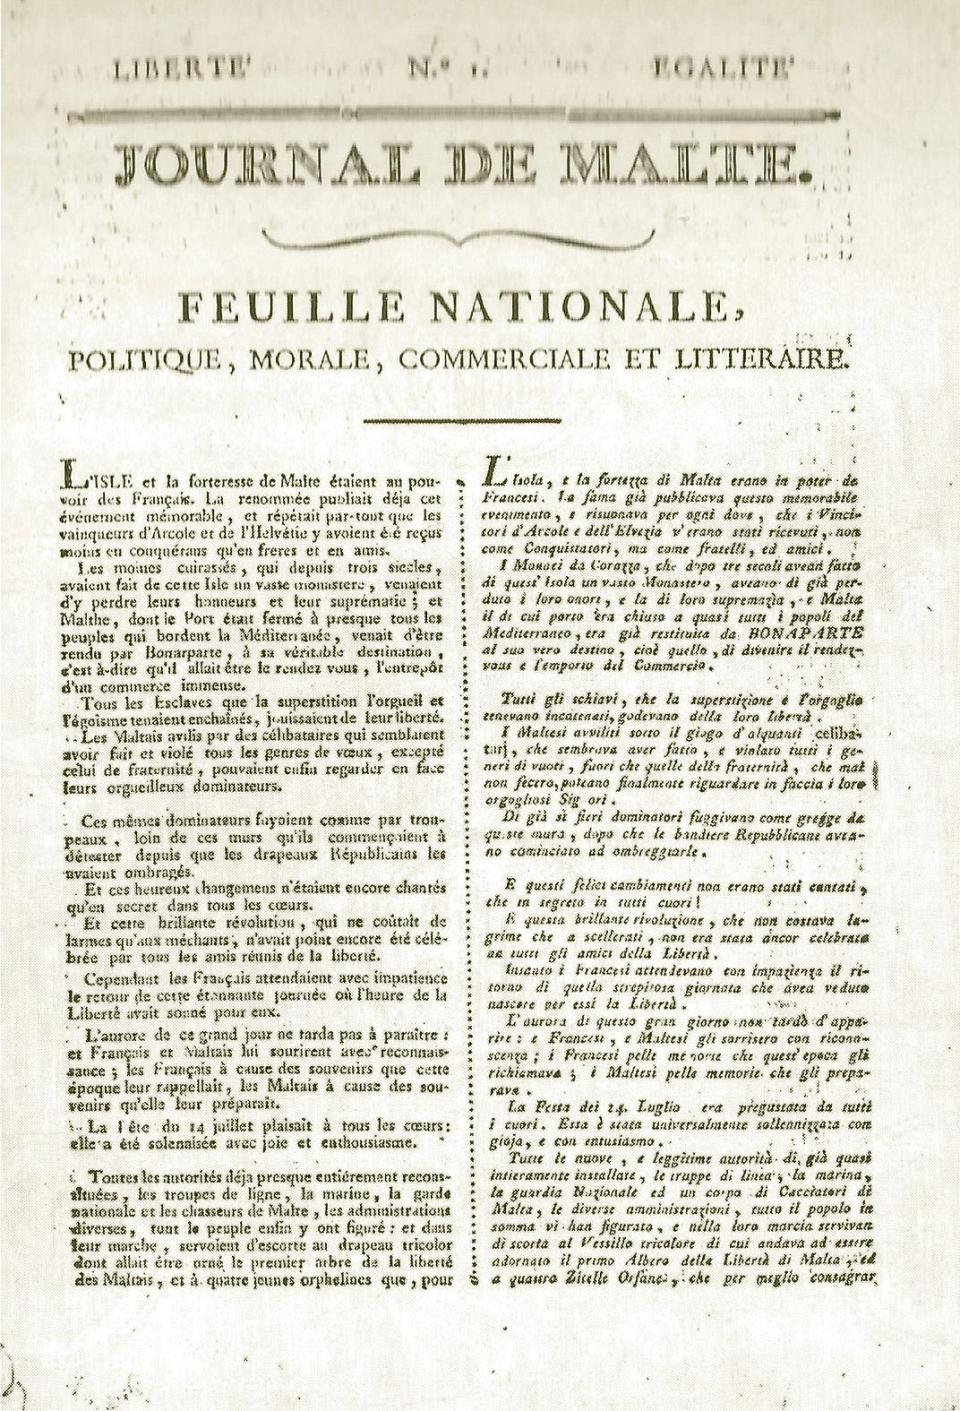 Front page of issue no. 1 of the Journal de Malte, the first newspaper to be published in Malta. Courtesy of the National Library of Malta